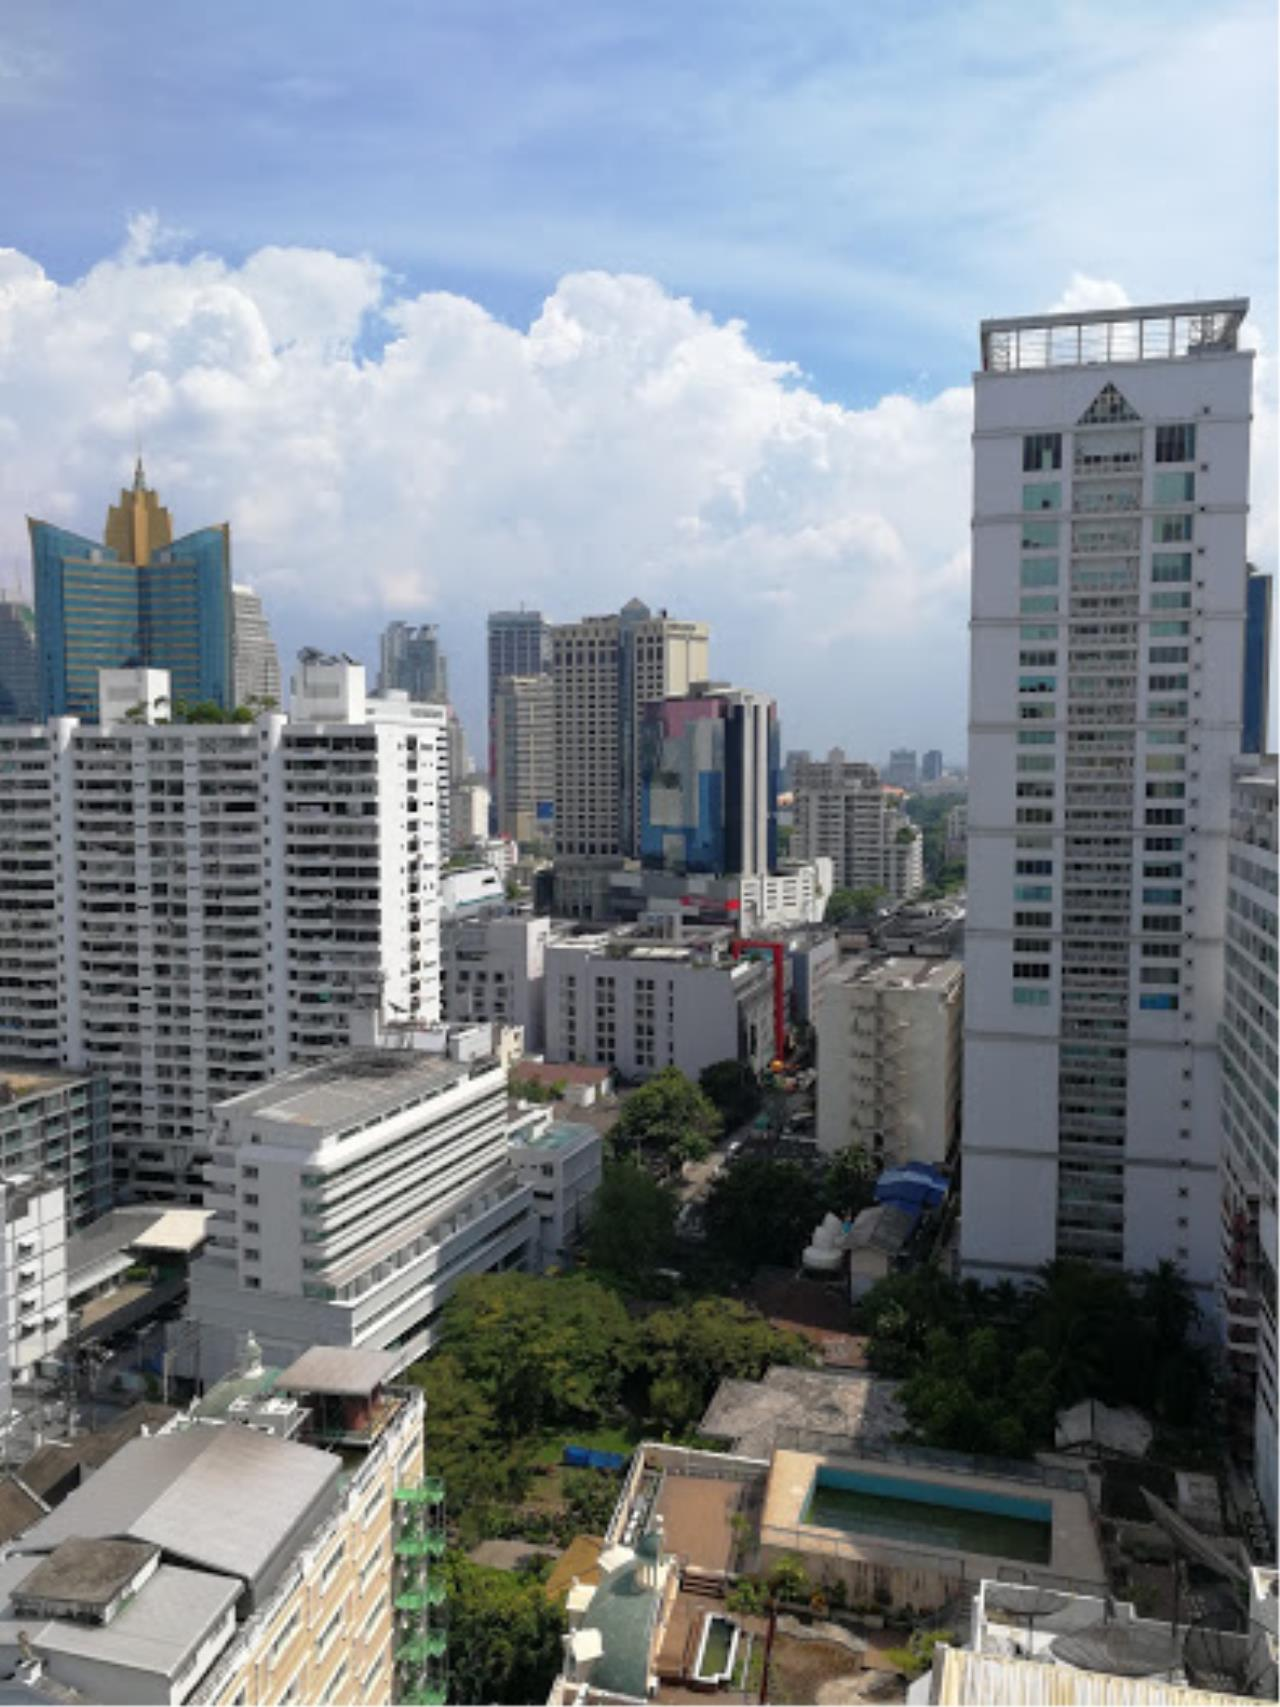 Quality Life Property Agency's S A L E  ! 15 Sukhumvit residence | 1 Bed 1 Bath | 59.29 Sq. M. 14